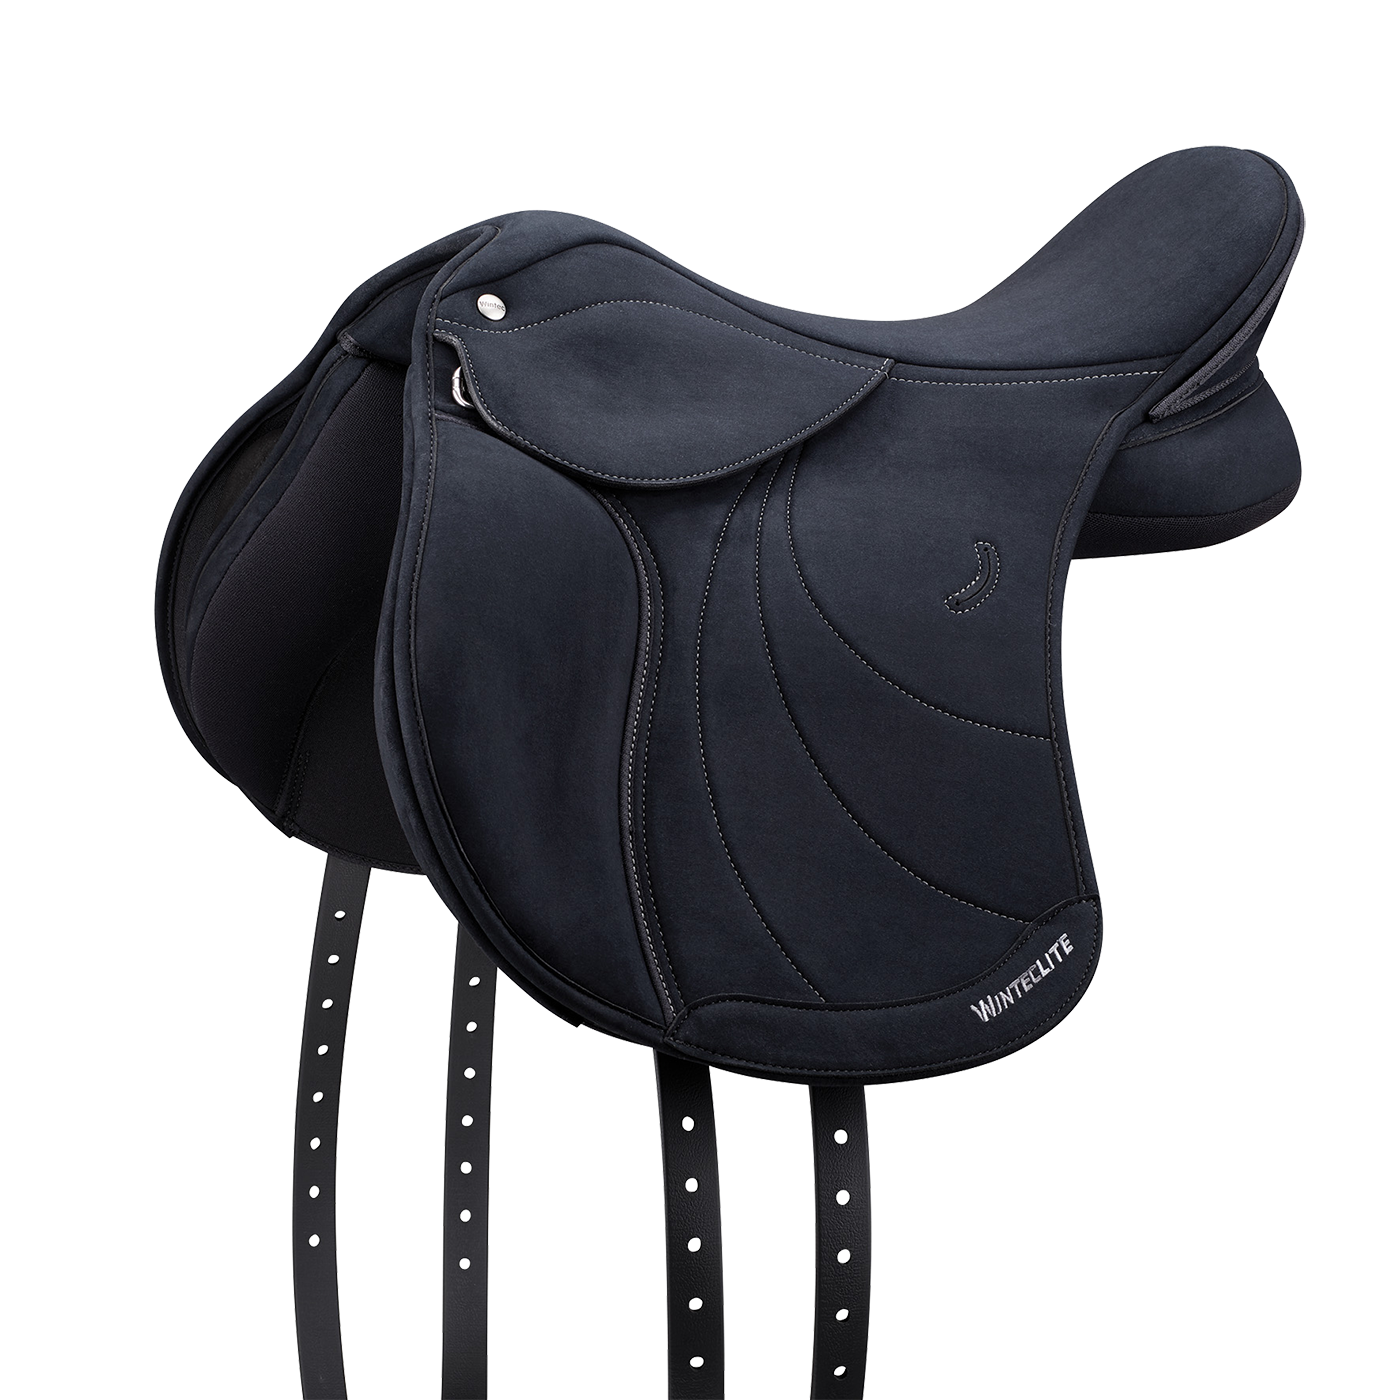 WintecLite Pony All Purpose D'Lux - 361:31033049251900,32016894951484